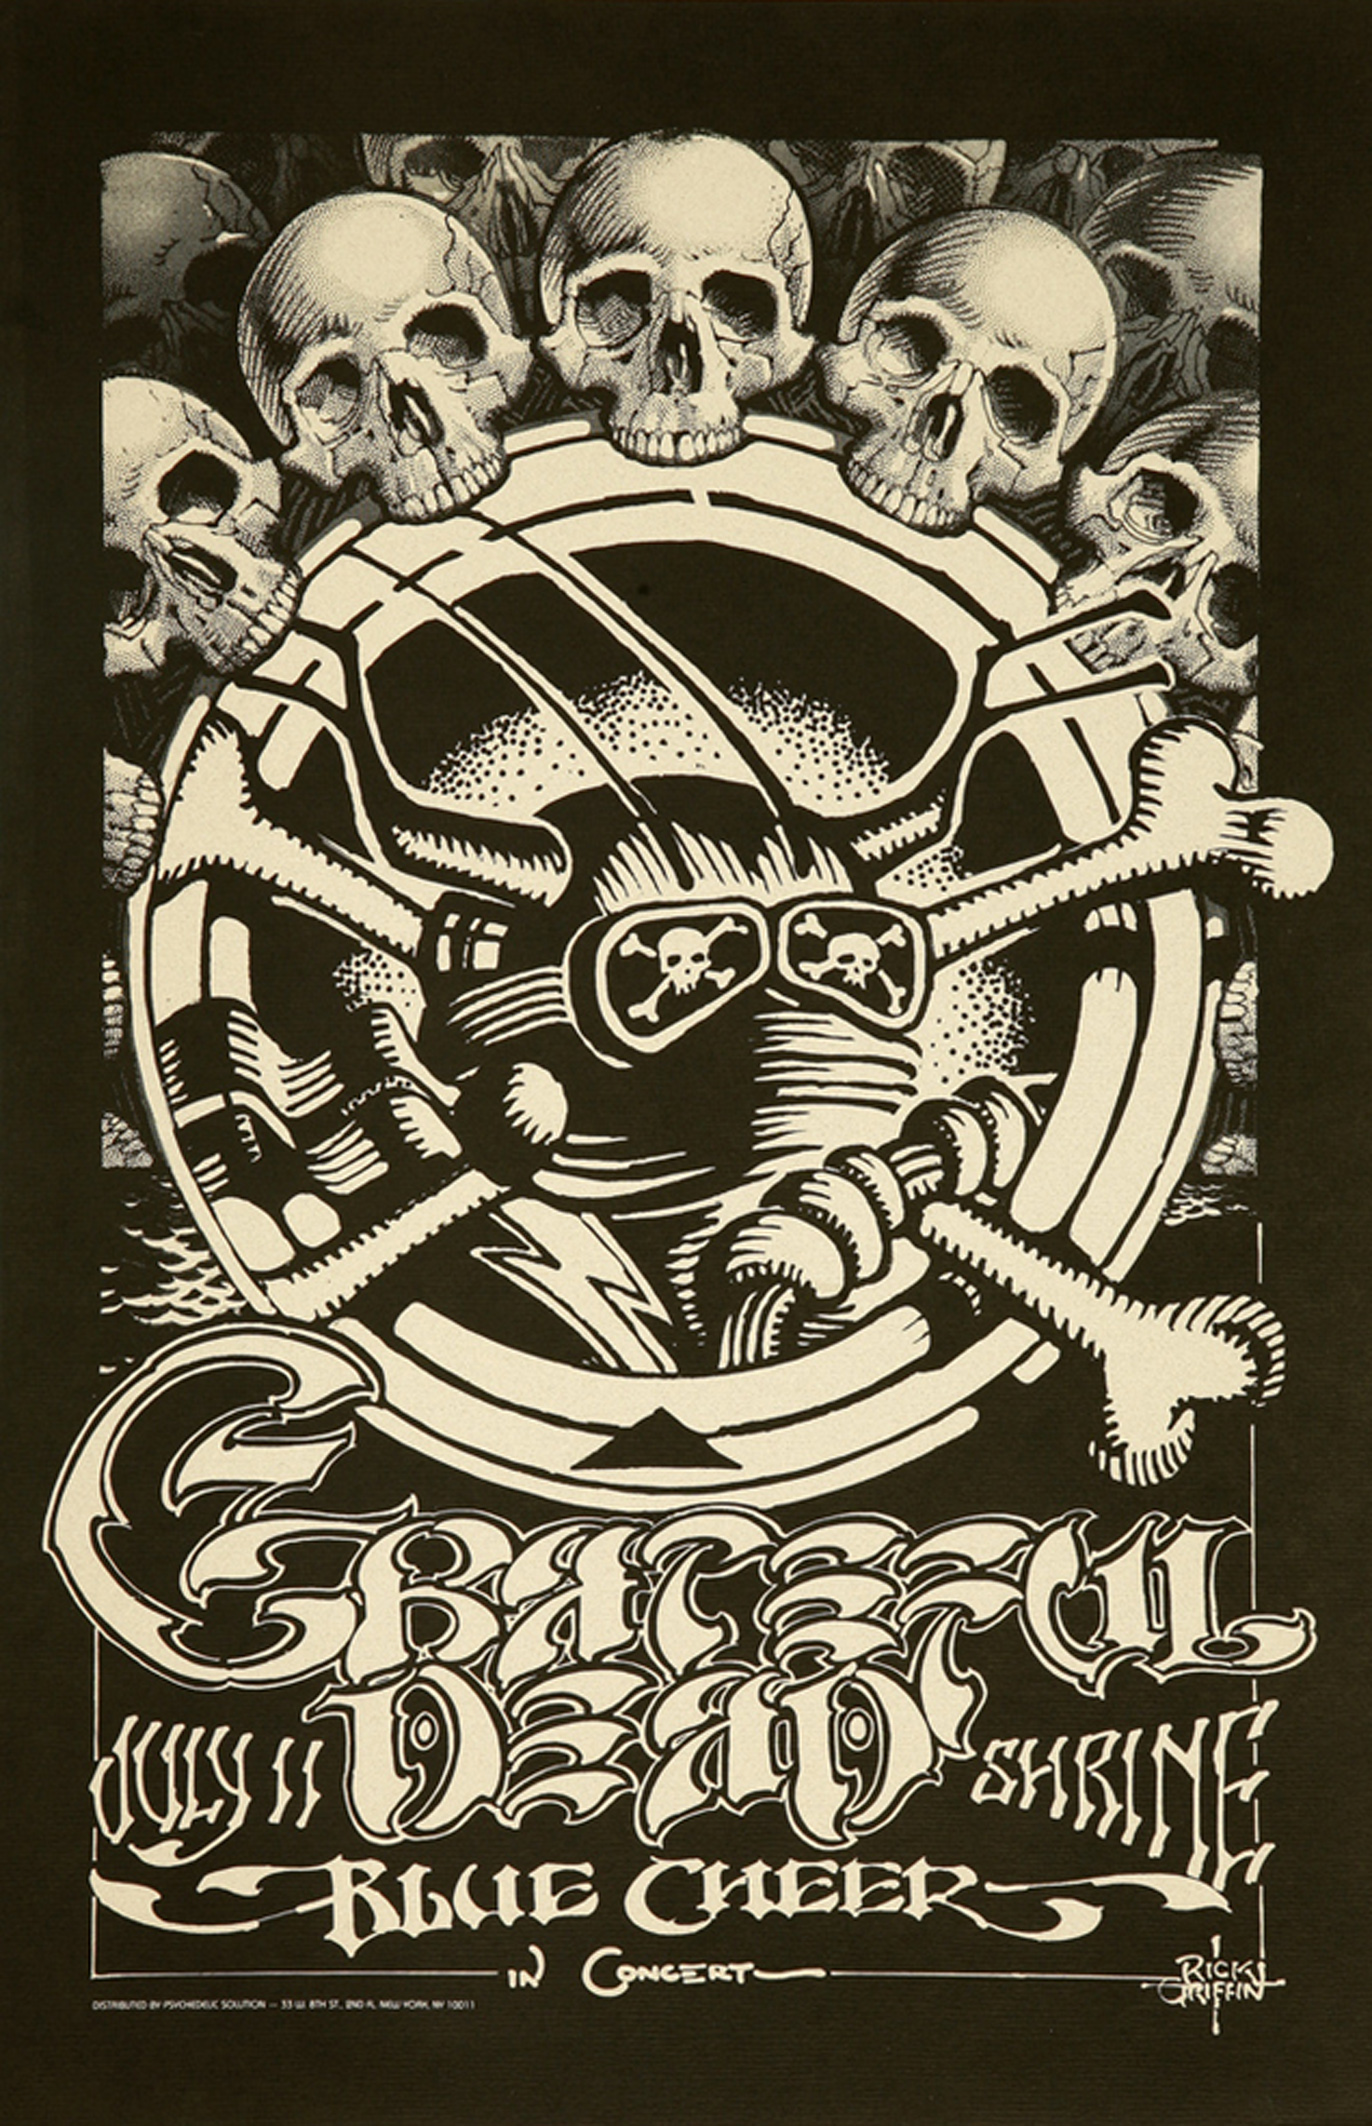 Grateful Dead with Blue Cheer 1968